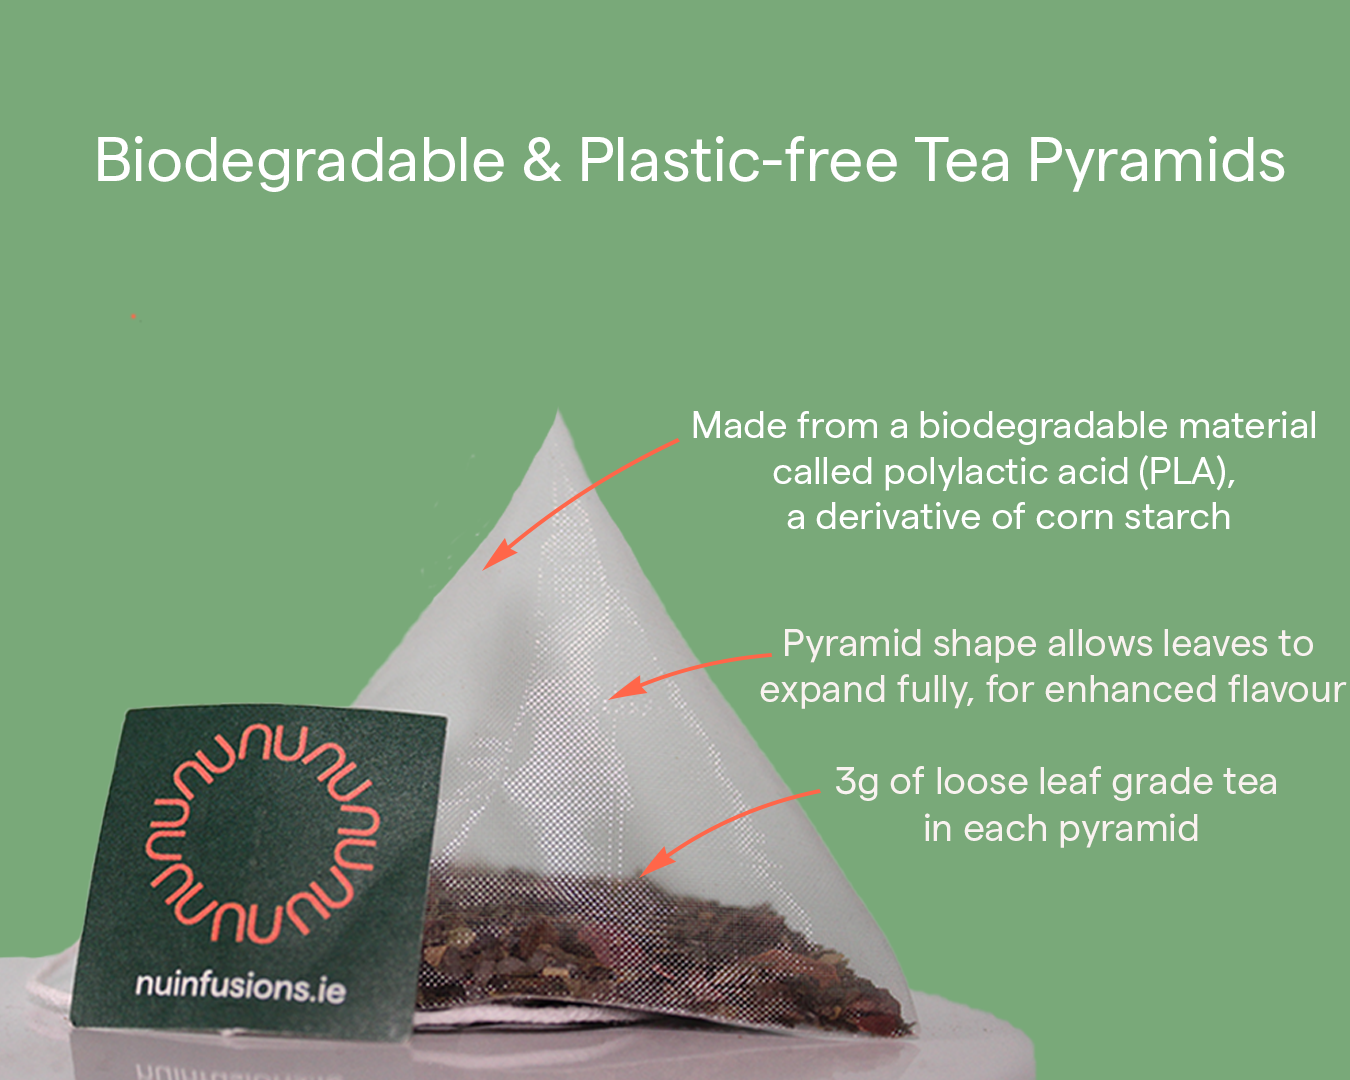 Biodegradable Tea Pyramids